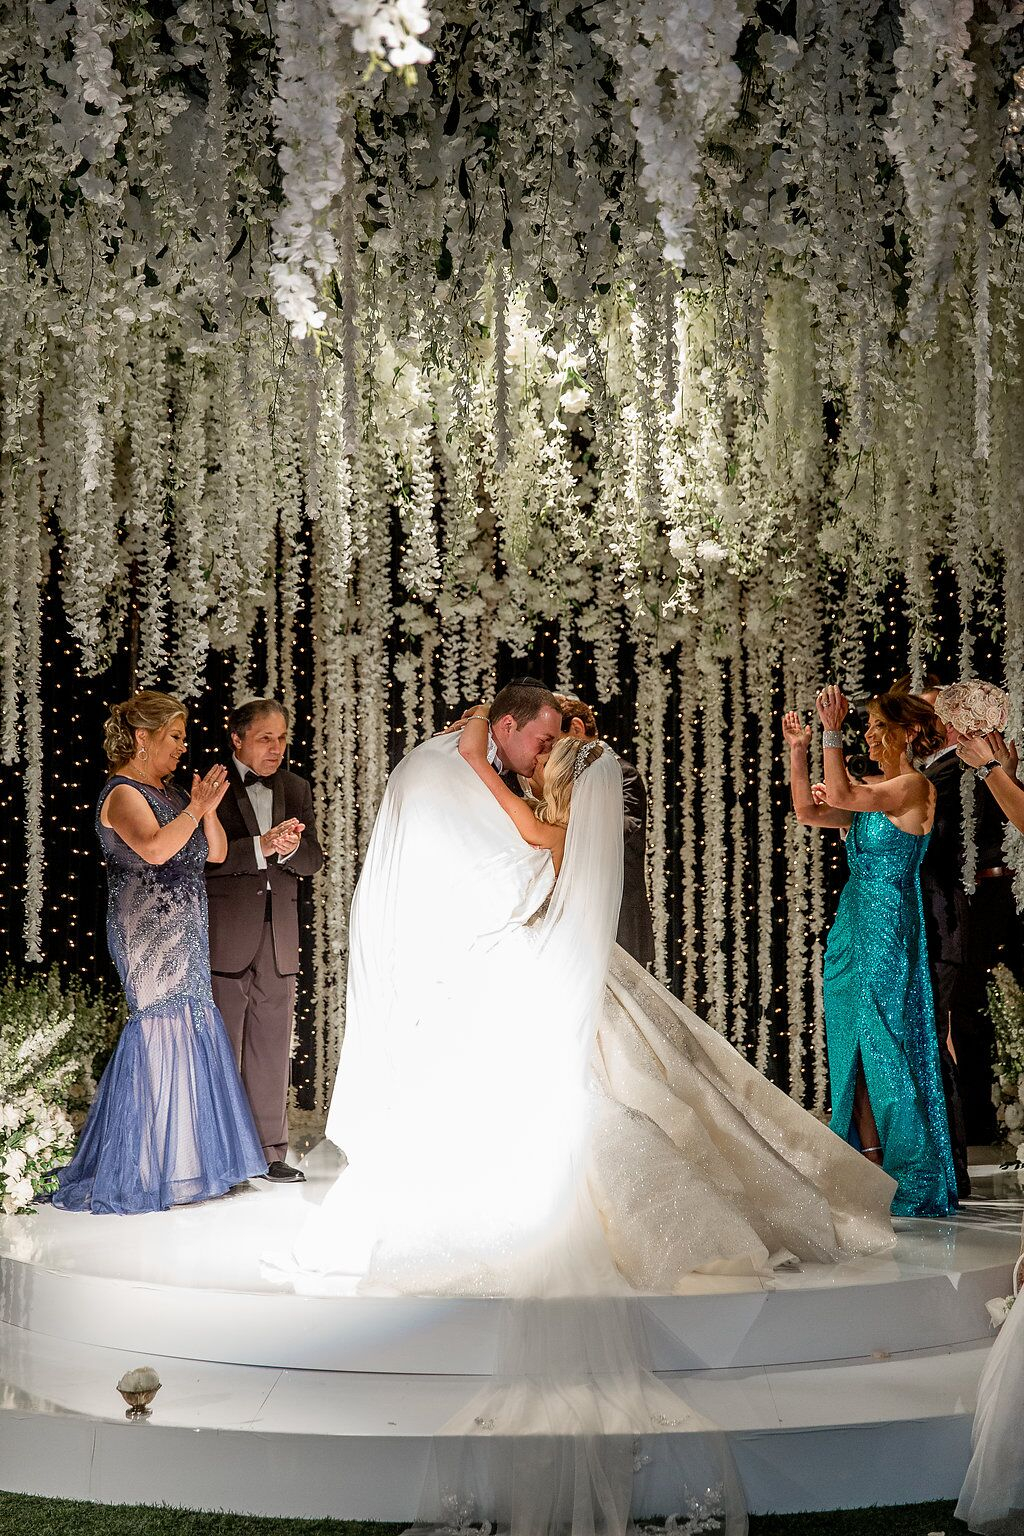 Classic White and Emerald Green Wedding Ceremony in ...